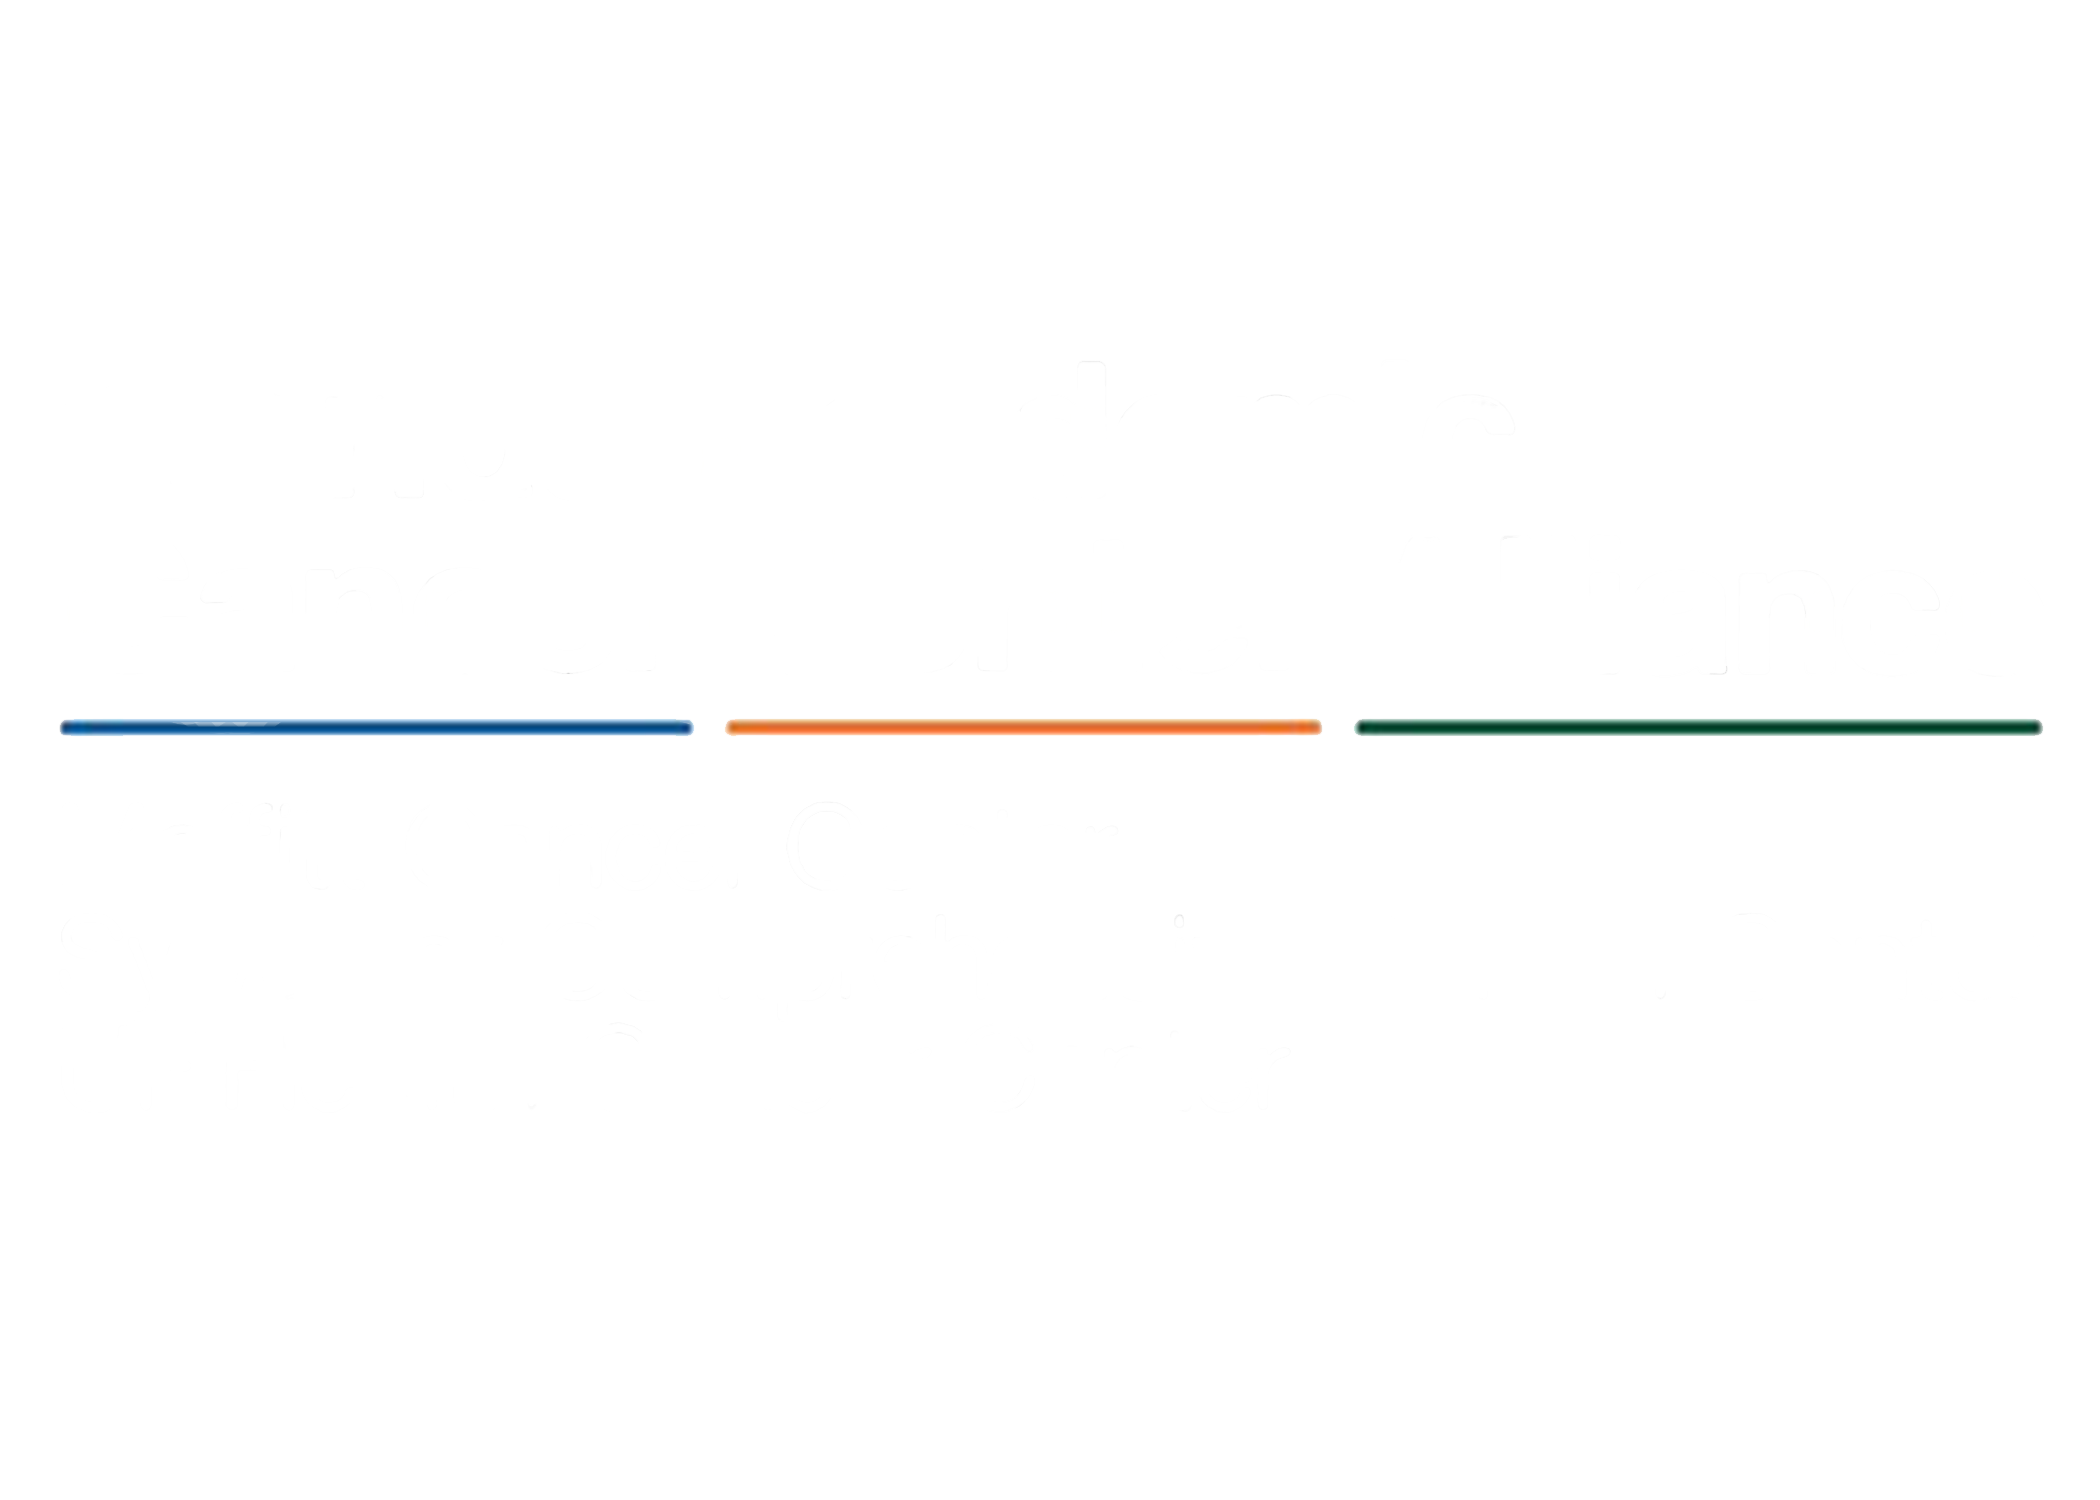 Florida Academic Cancer Center Alliance Logo